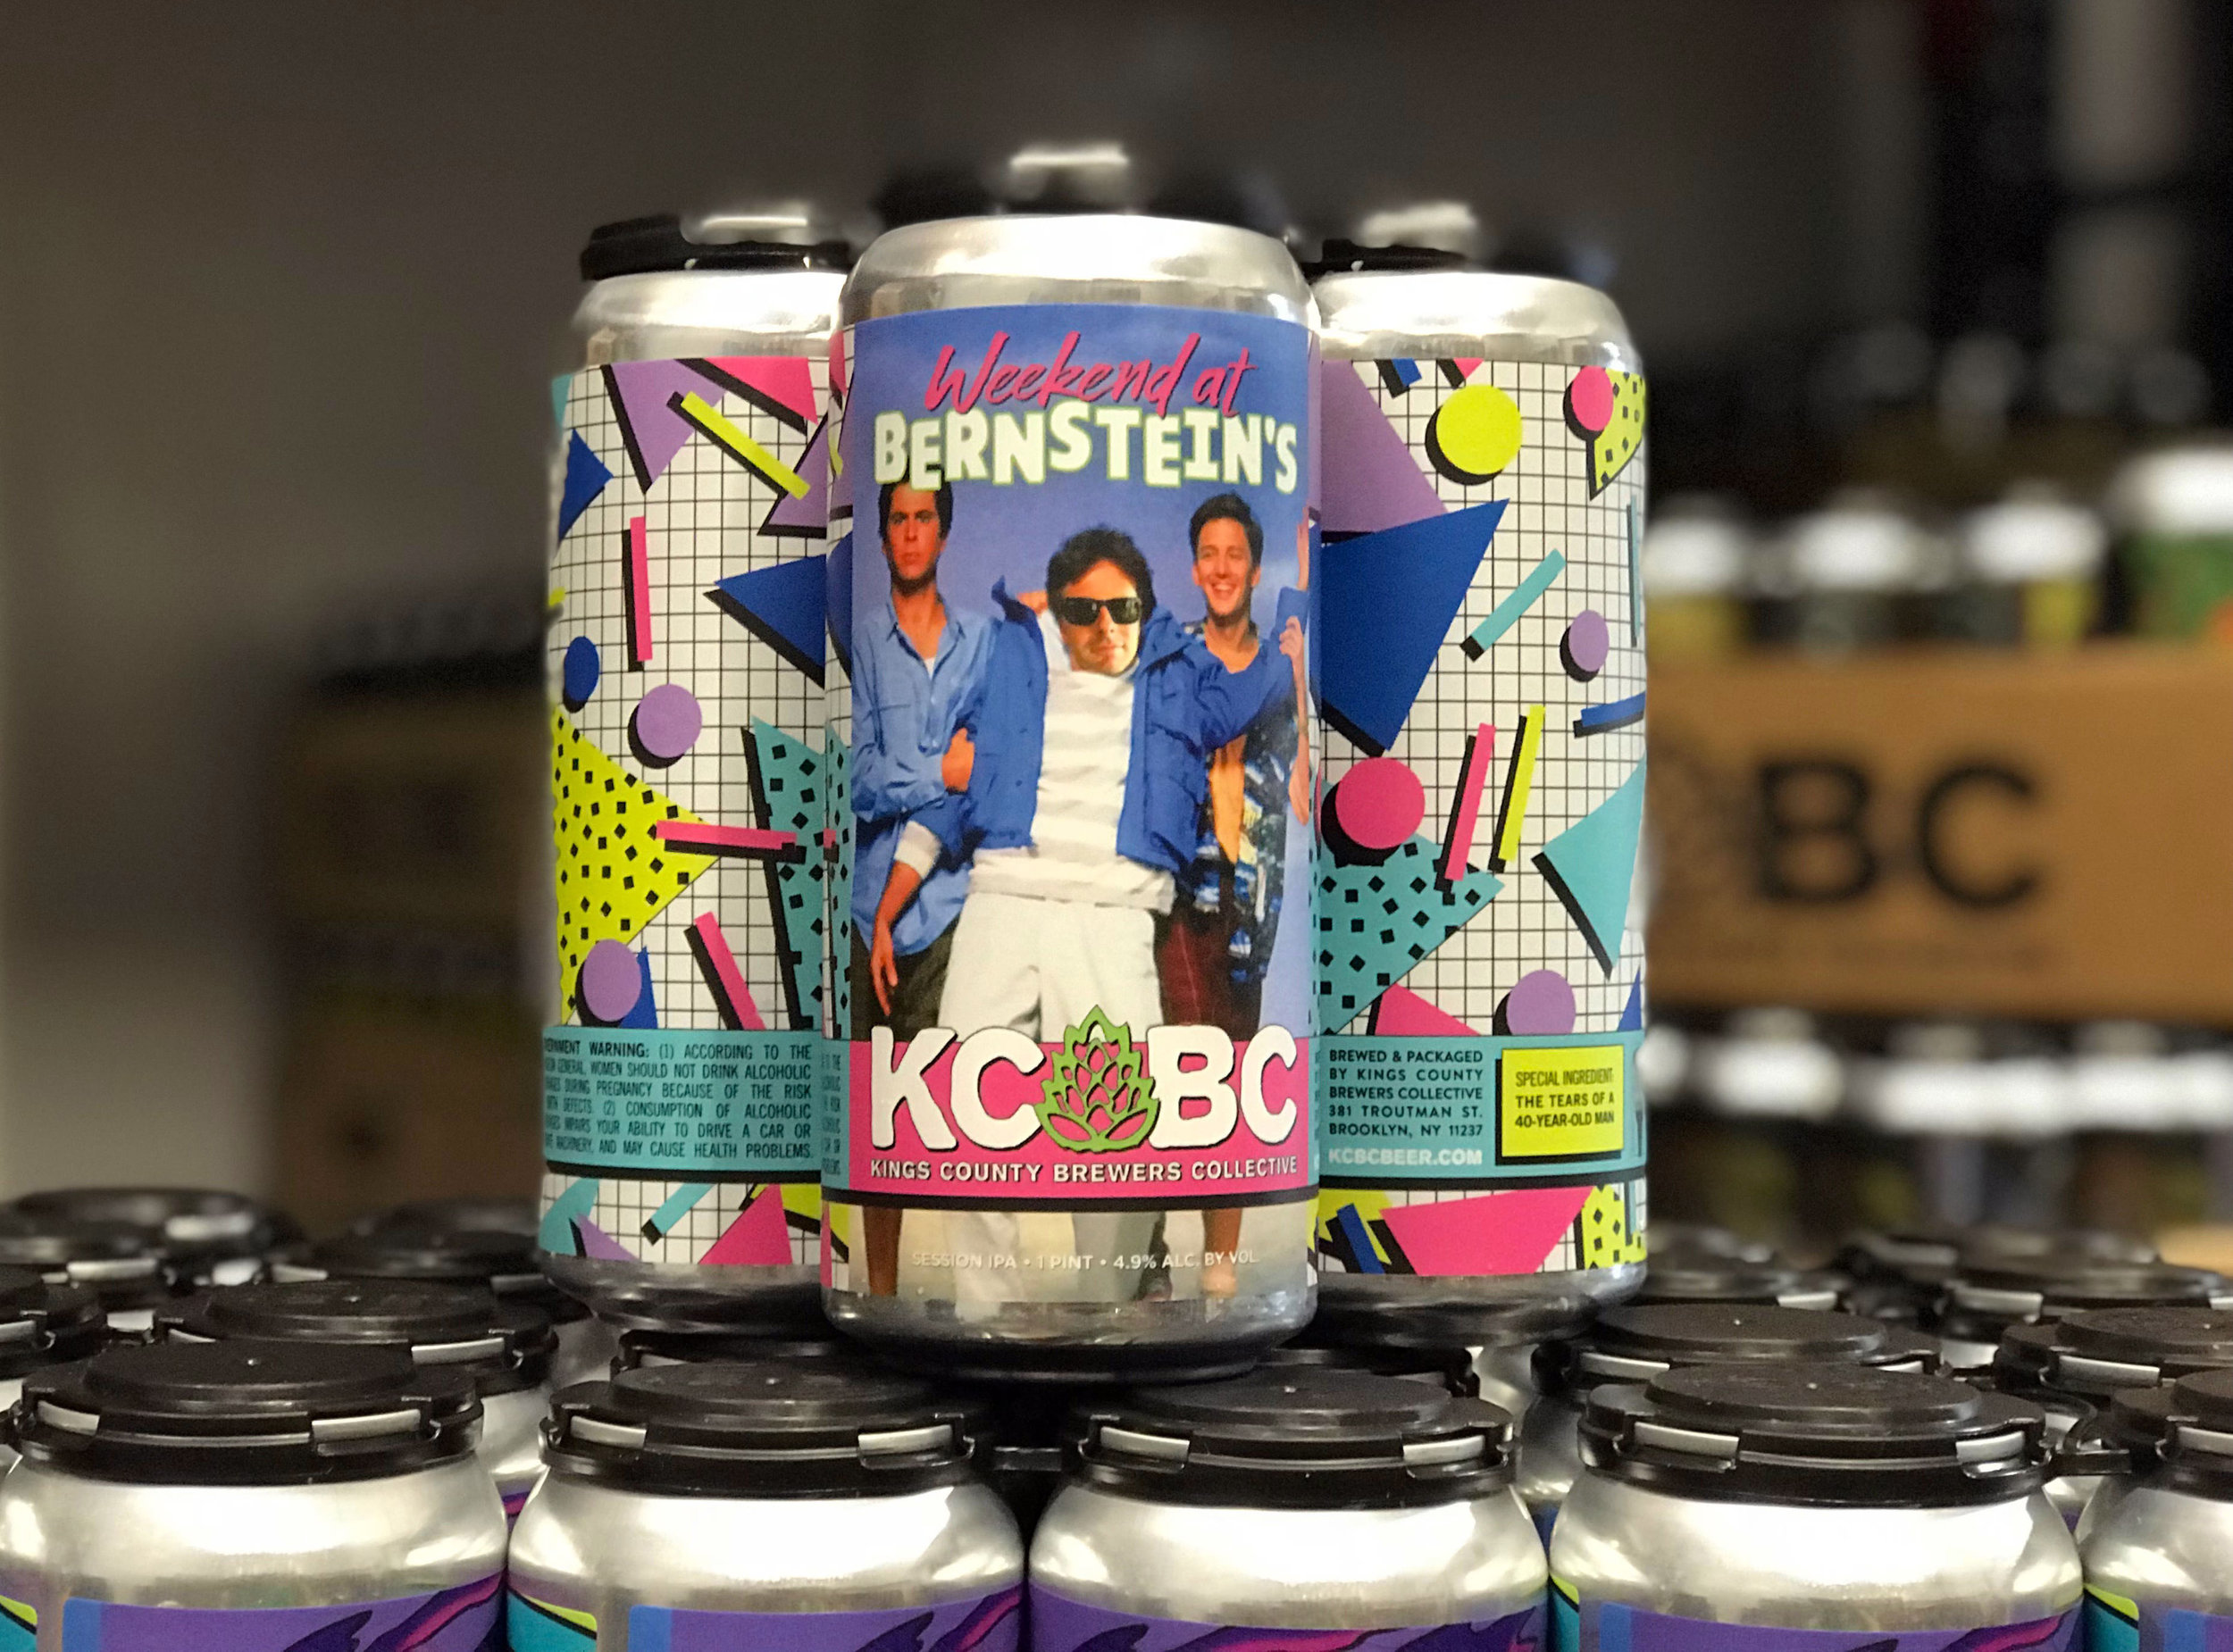 Weekend at Bernstein's - KCBC beer label design for Joshua M. Bernstein's 40th Birthday.